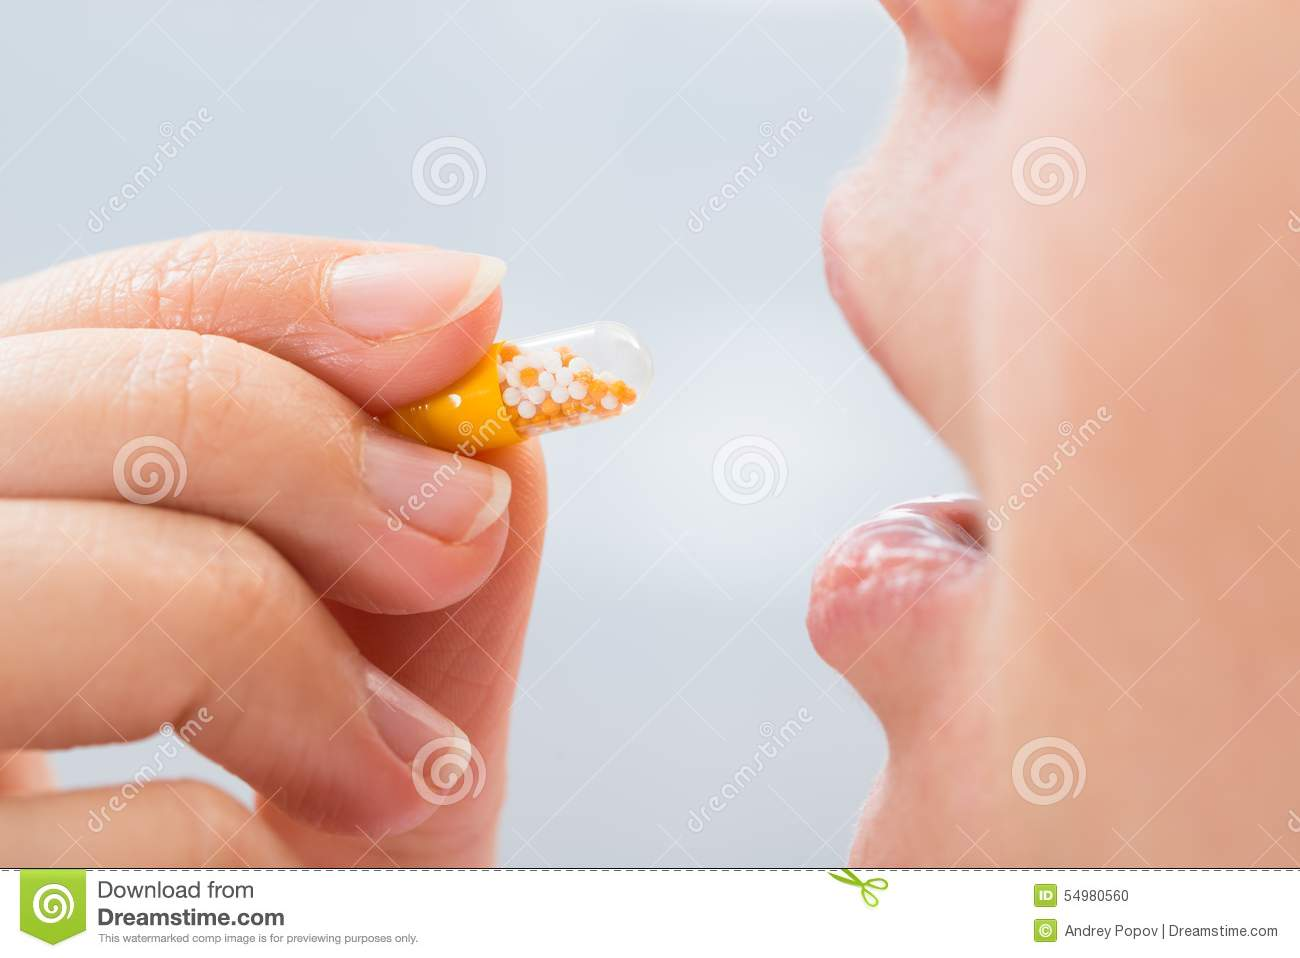 Image result for eating medicine stock